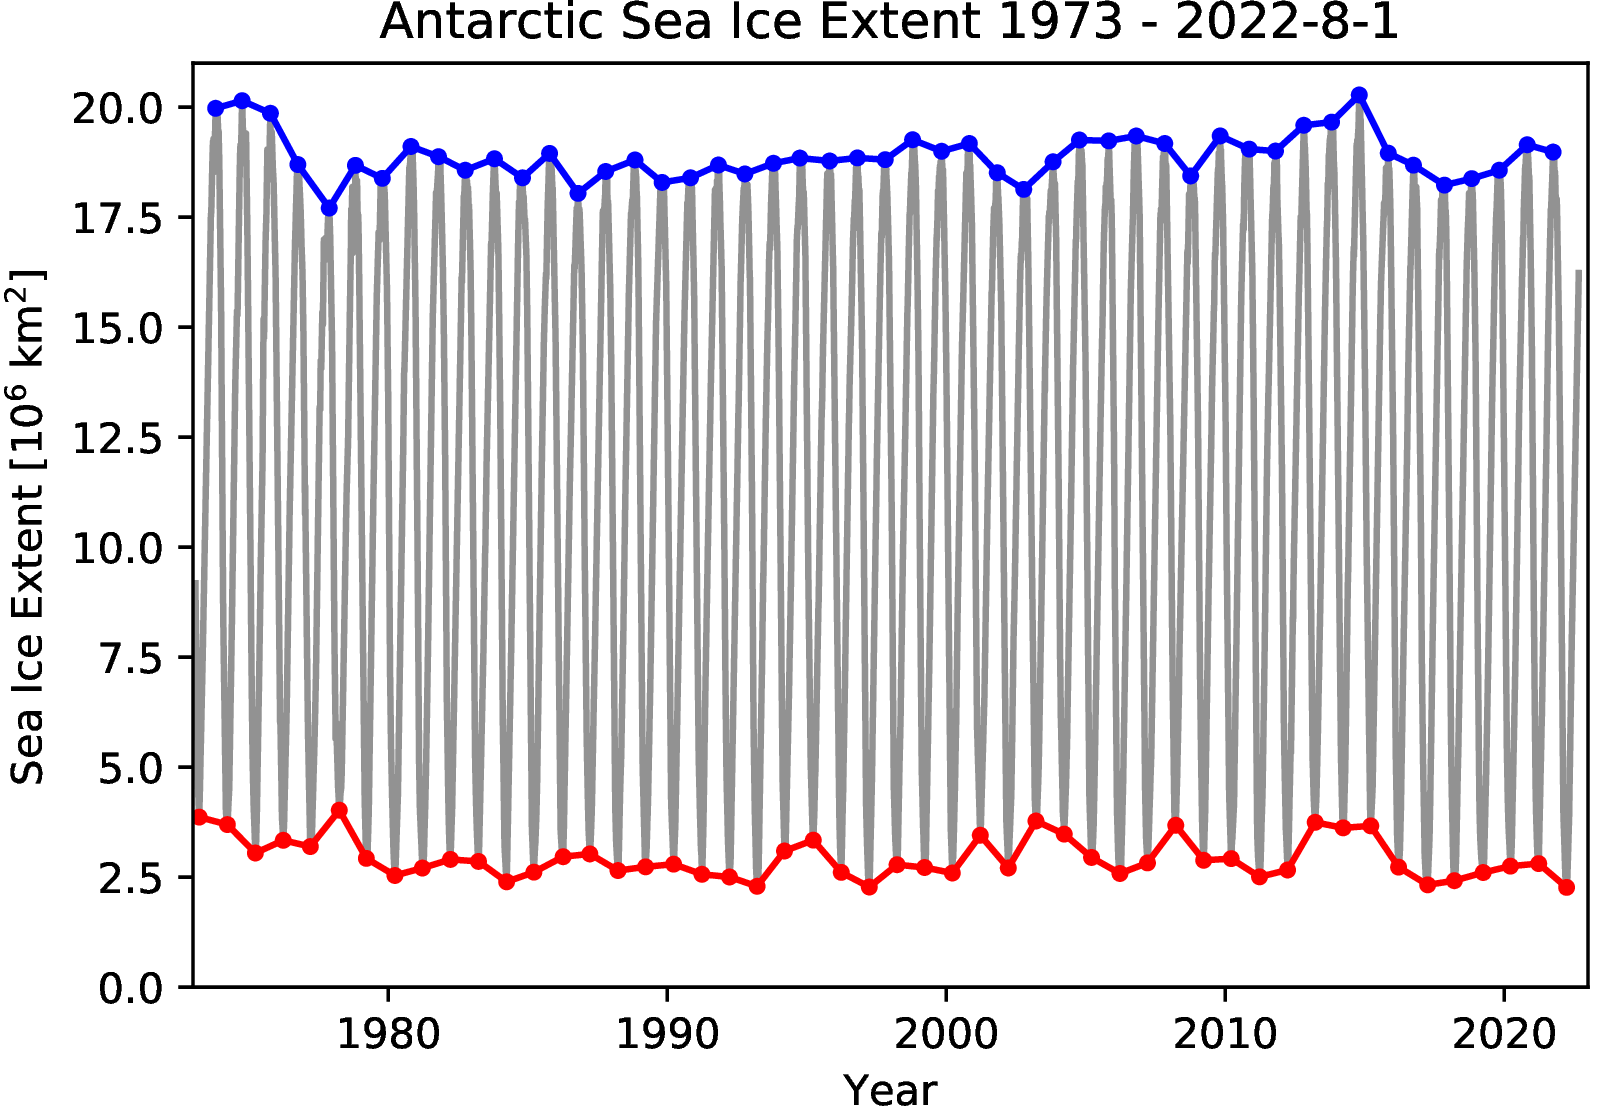 https://seaice.uni-bremen.de/data/amsr2/today/ice_minmax_s.png